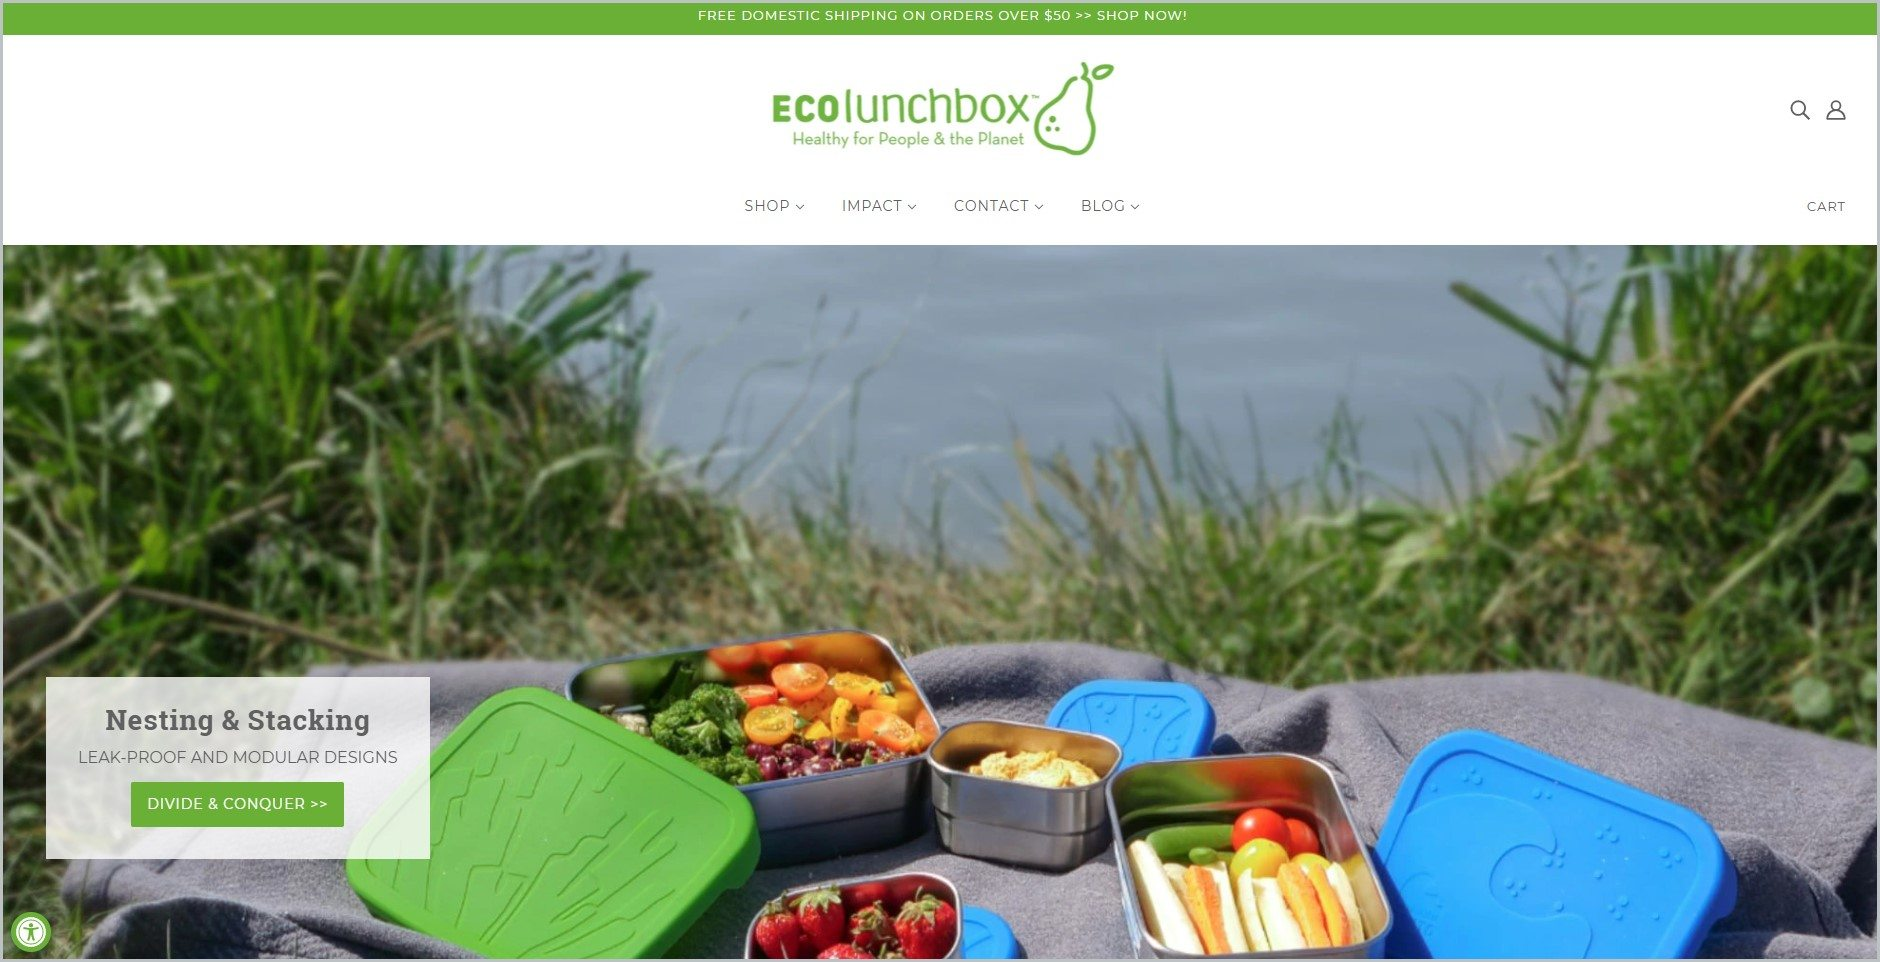 screenshot of ECOlunchbox showcasing an image of stainless steel food containers